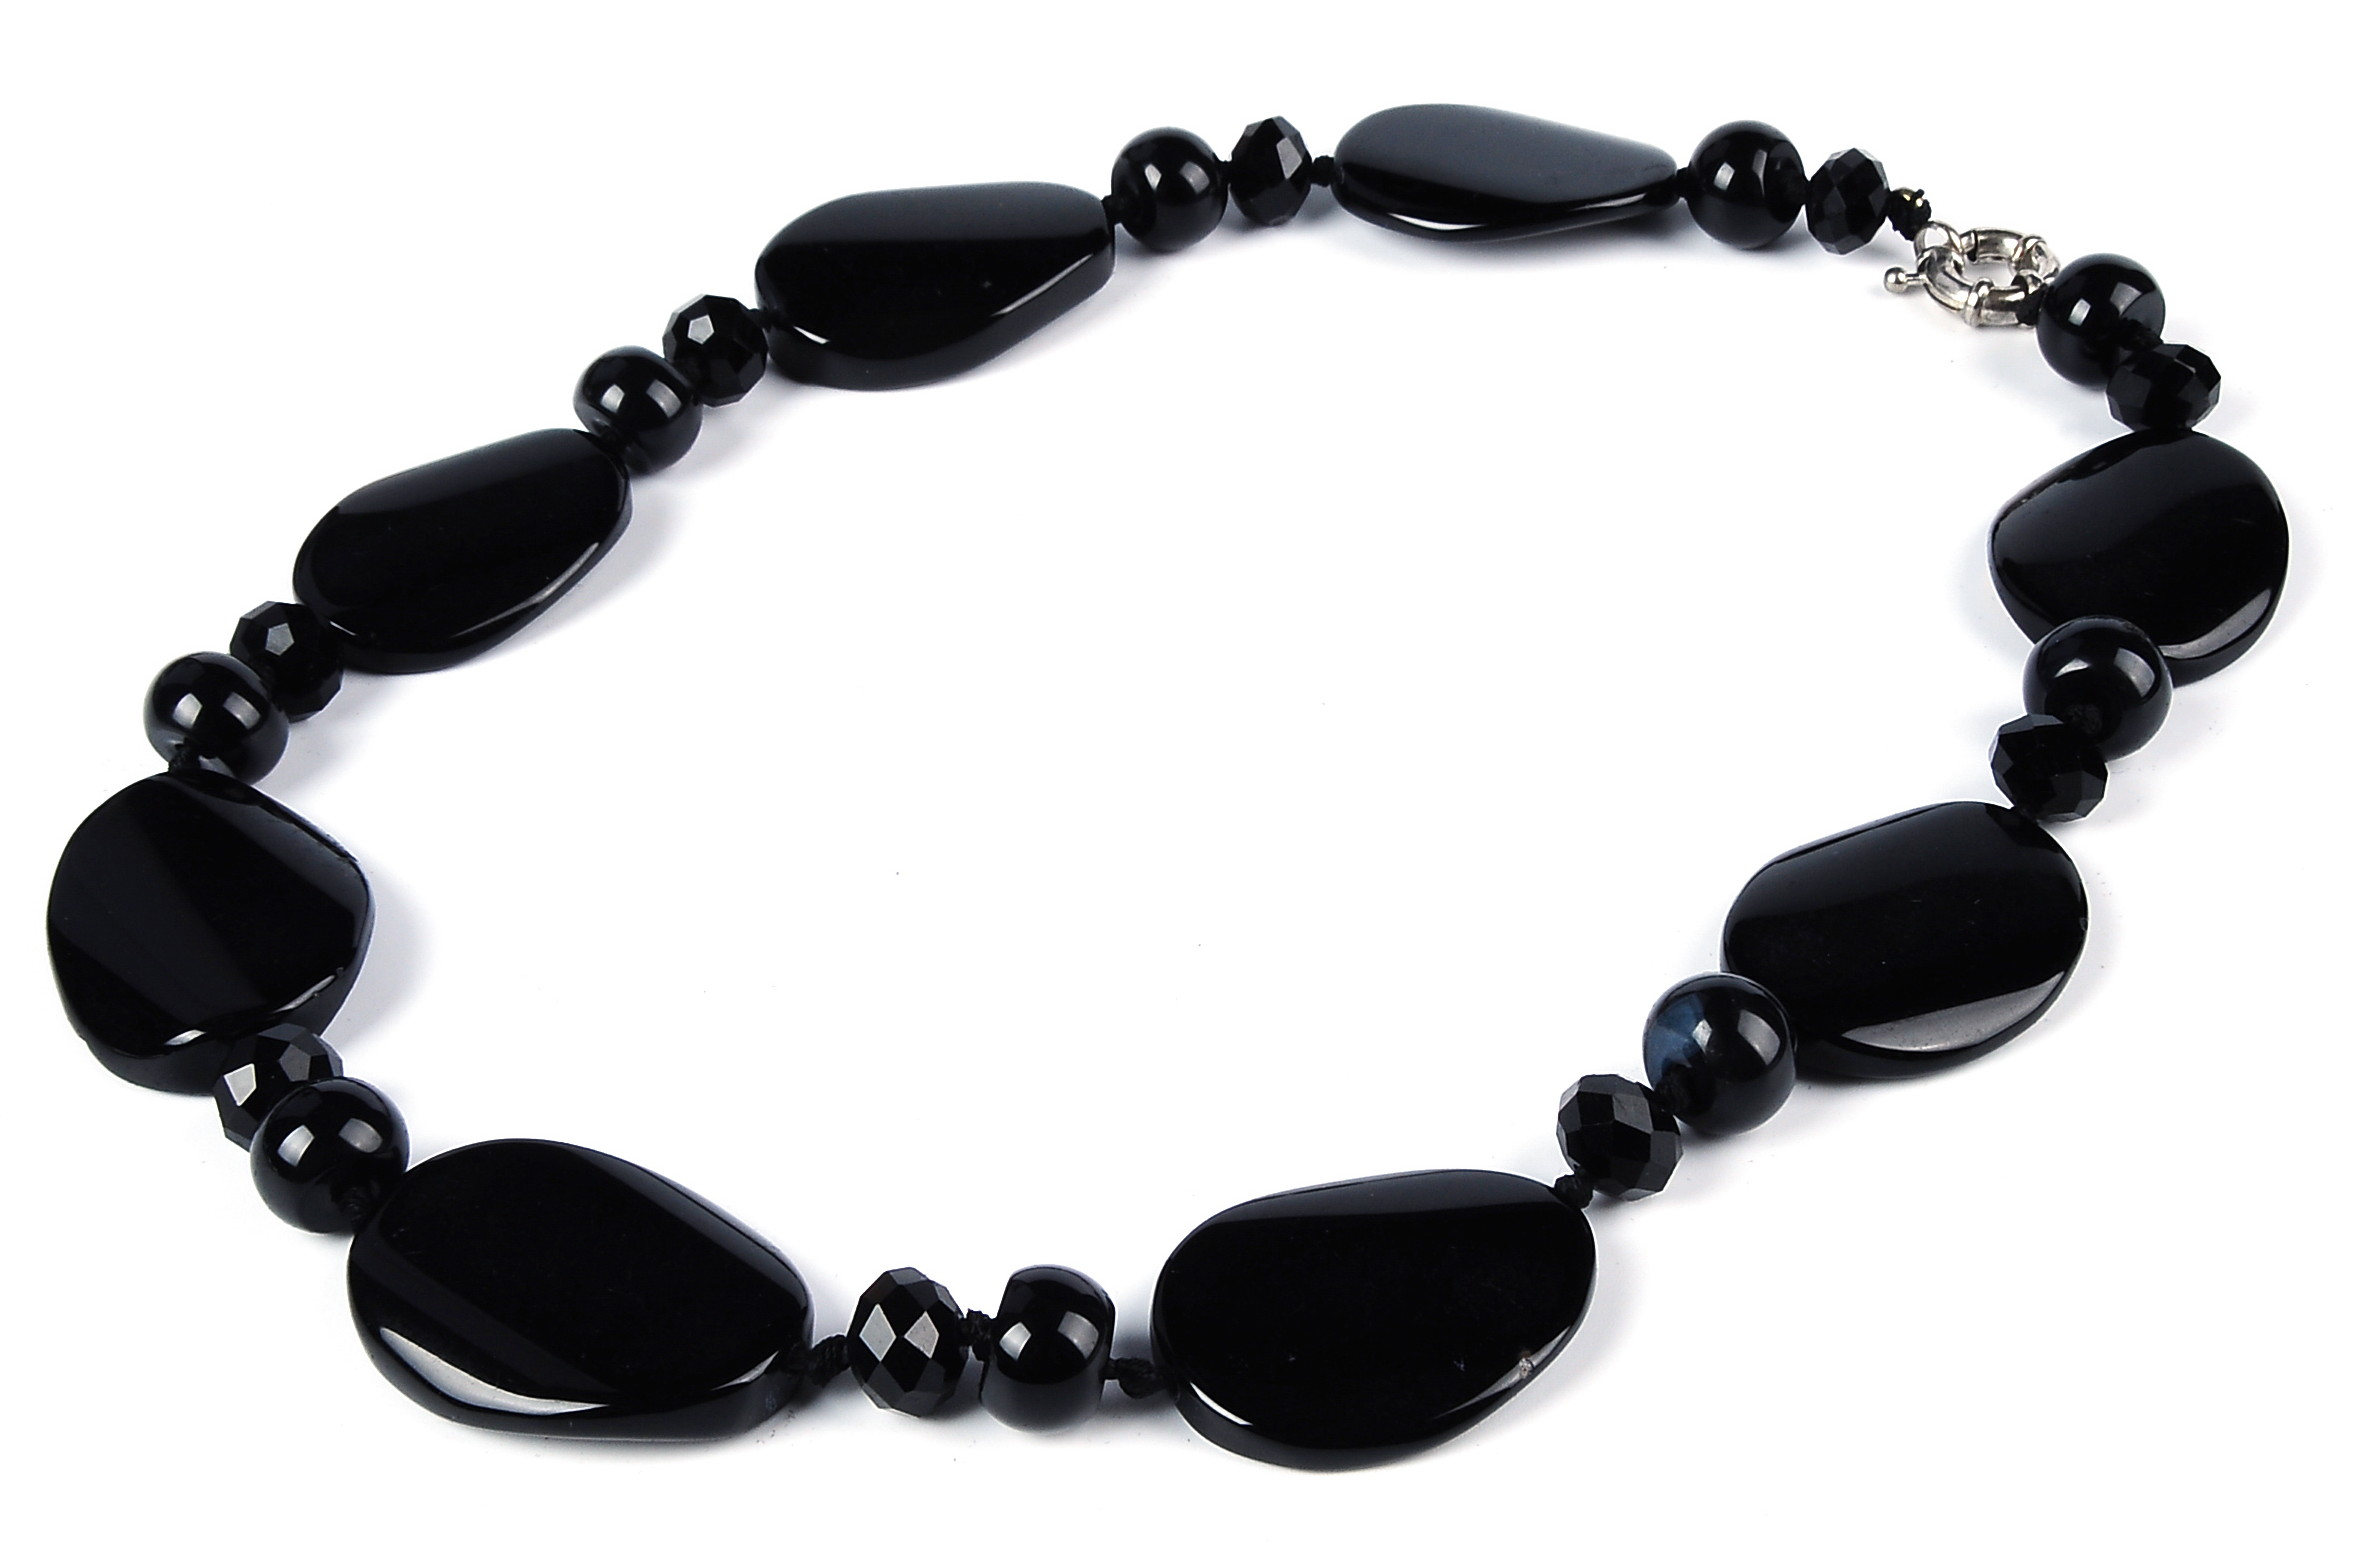 Huge 40X30 mm Black Agate Necklace -nk-ag3